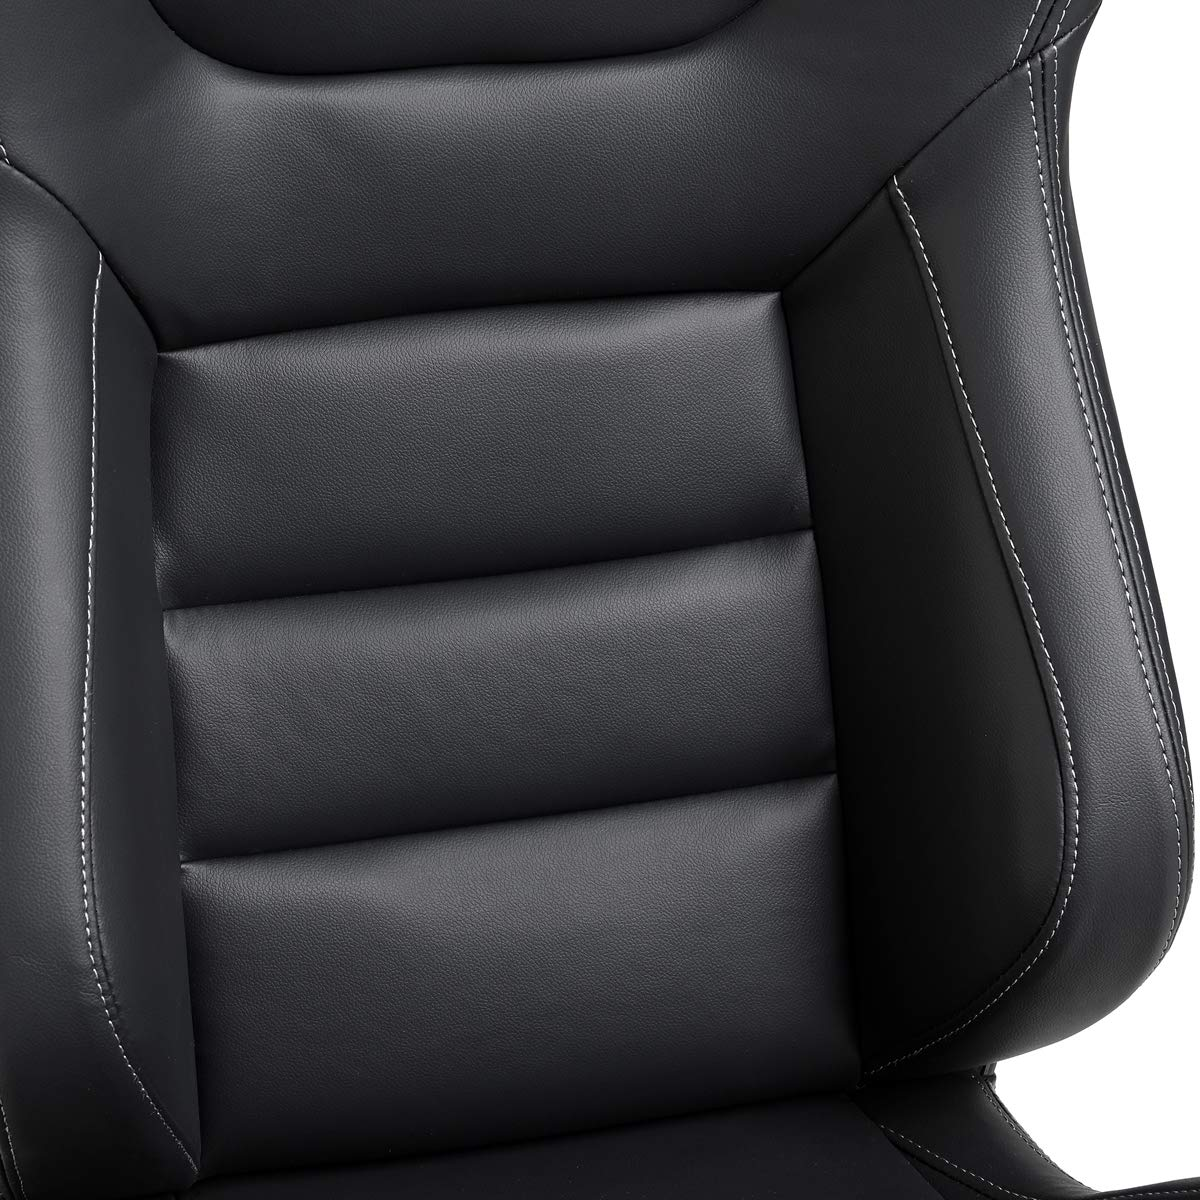 Black with White Stitching Pair of PVC Leather Racing Bucket Seats with Dual Sliders Racing Seats Ship from USA Warehouse